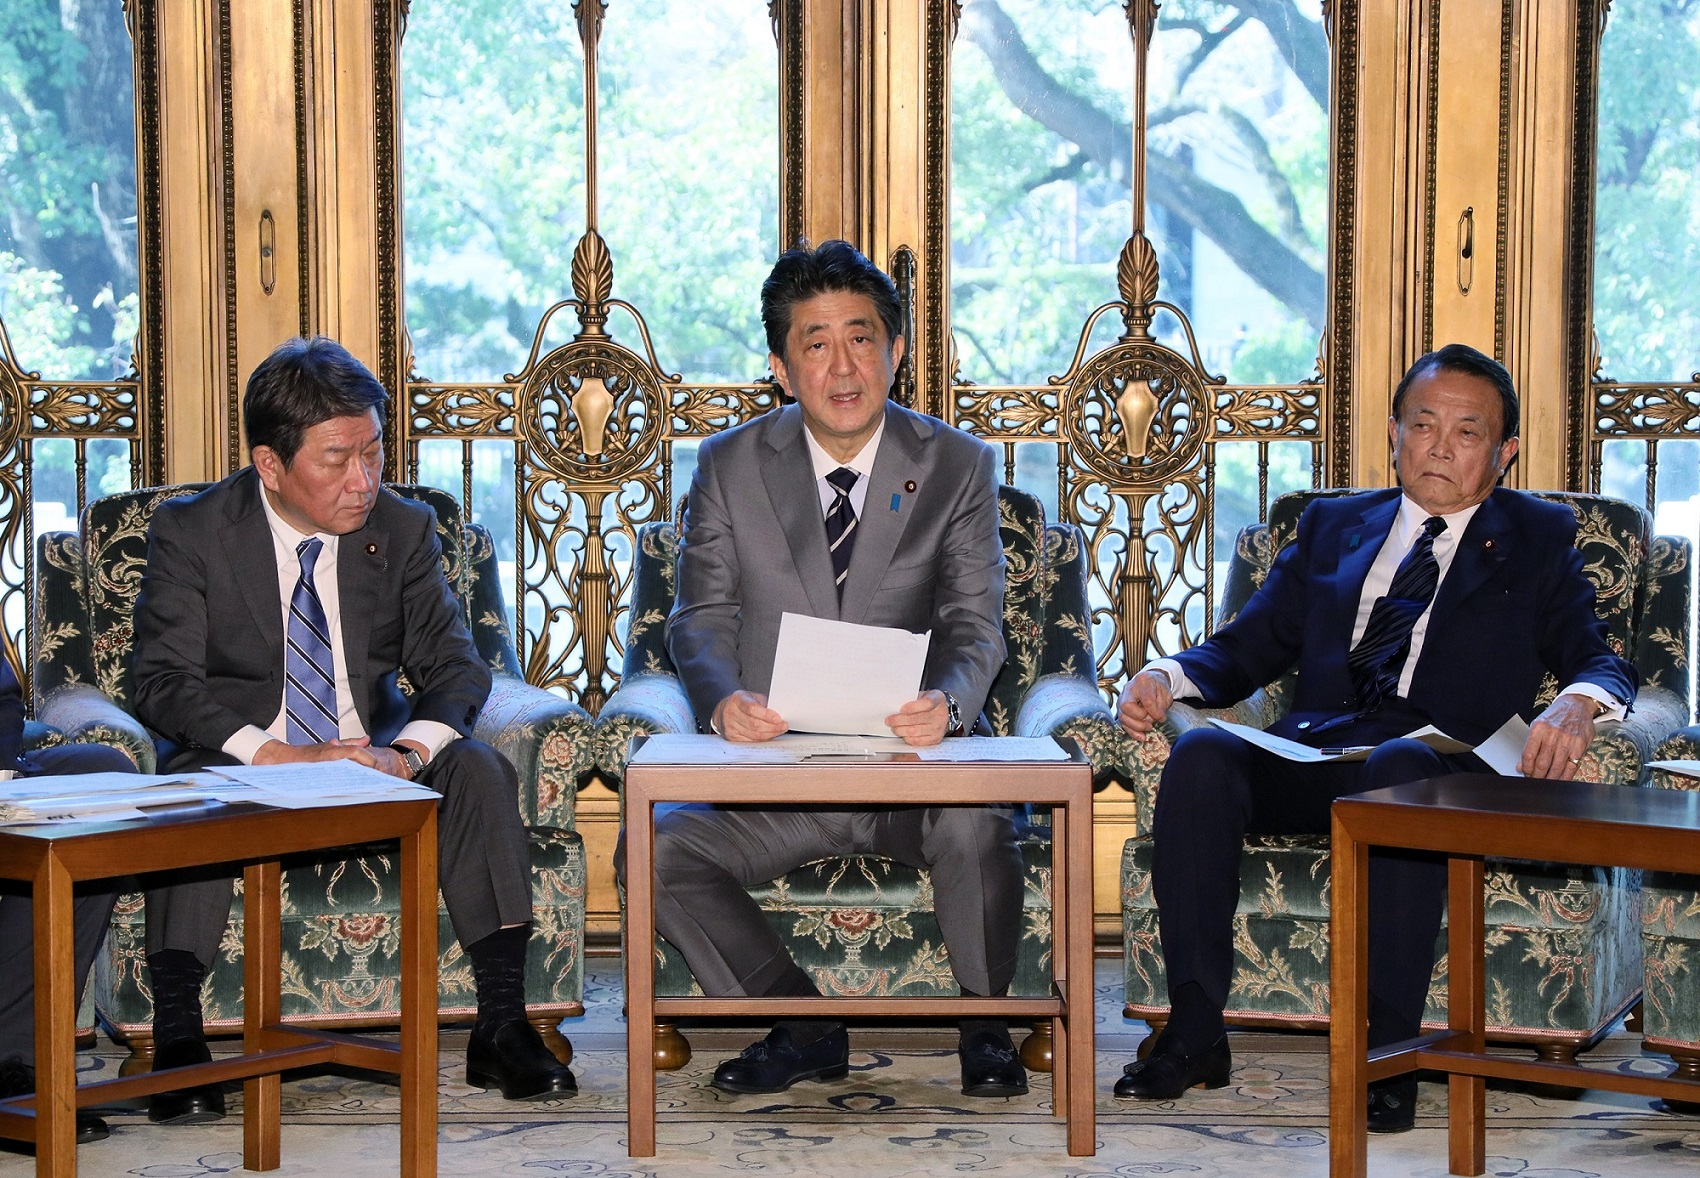 Photograph of the Prime Minister making a statement (1)